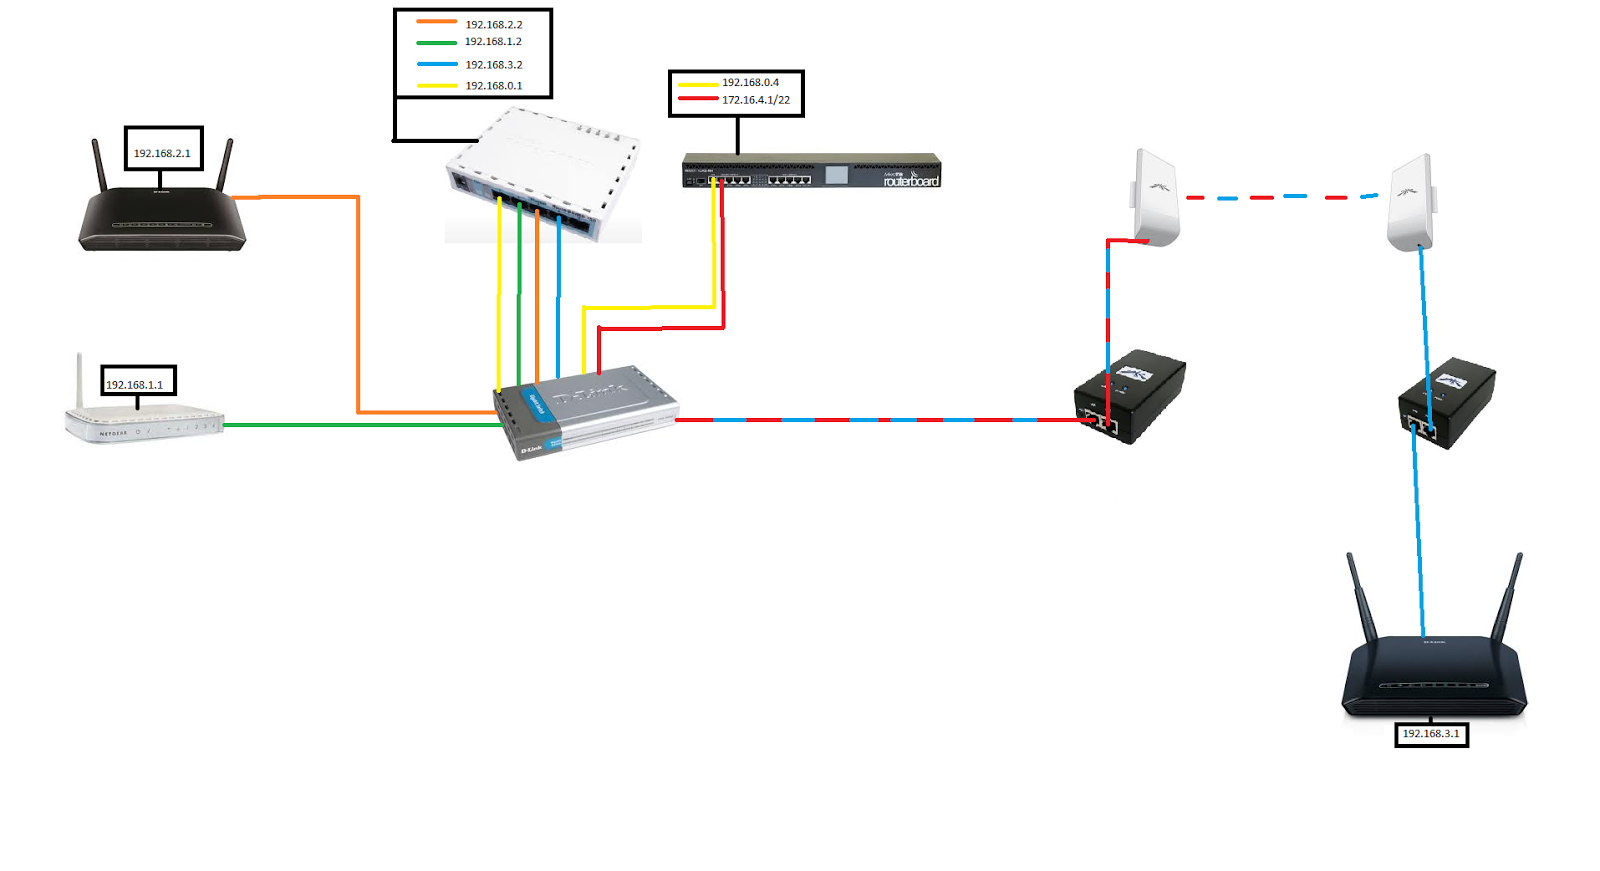 medium resolution of by adding all your office devices to a switch you can connect adsl connections from a remote site and distribute it to your clients this help your